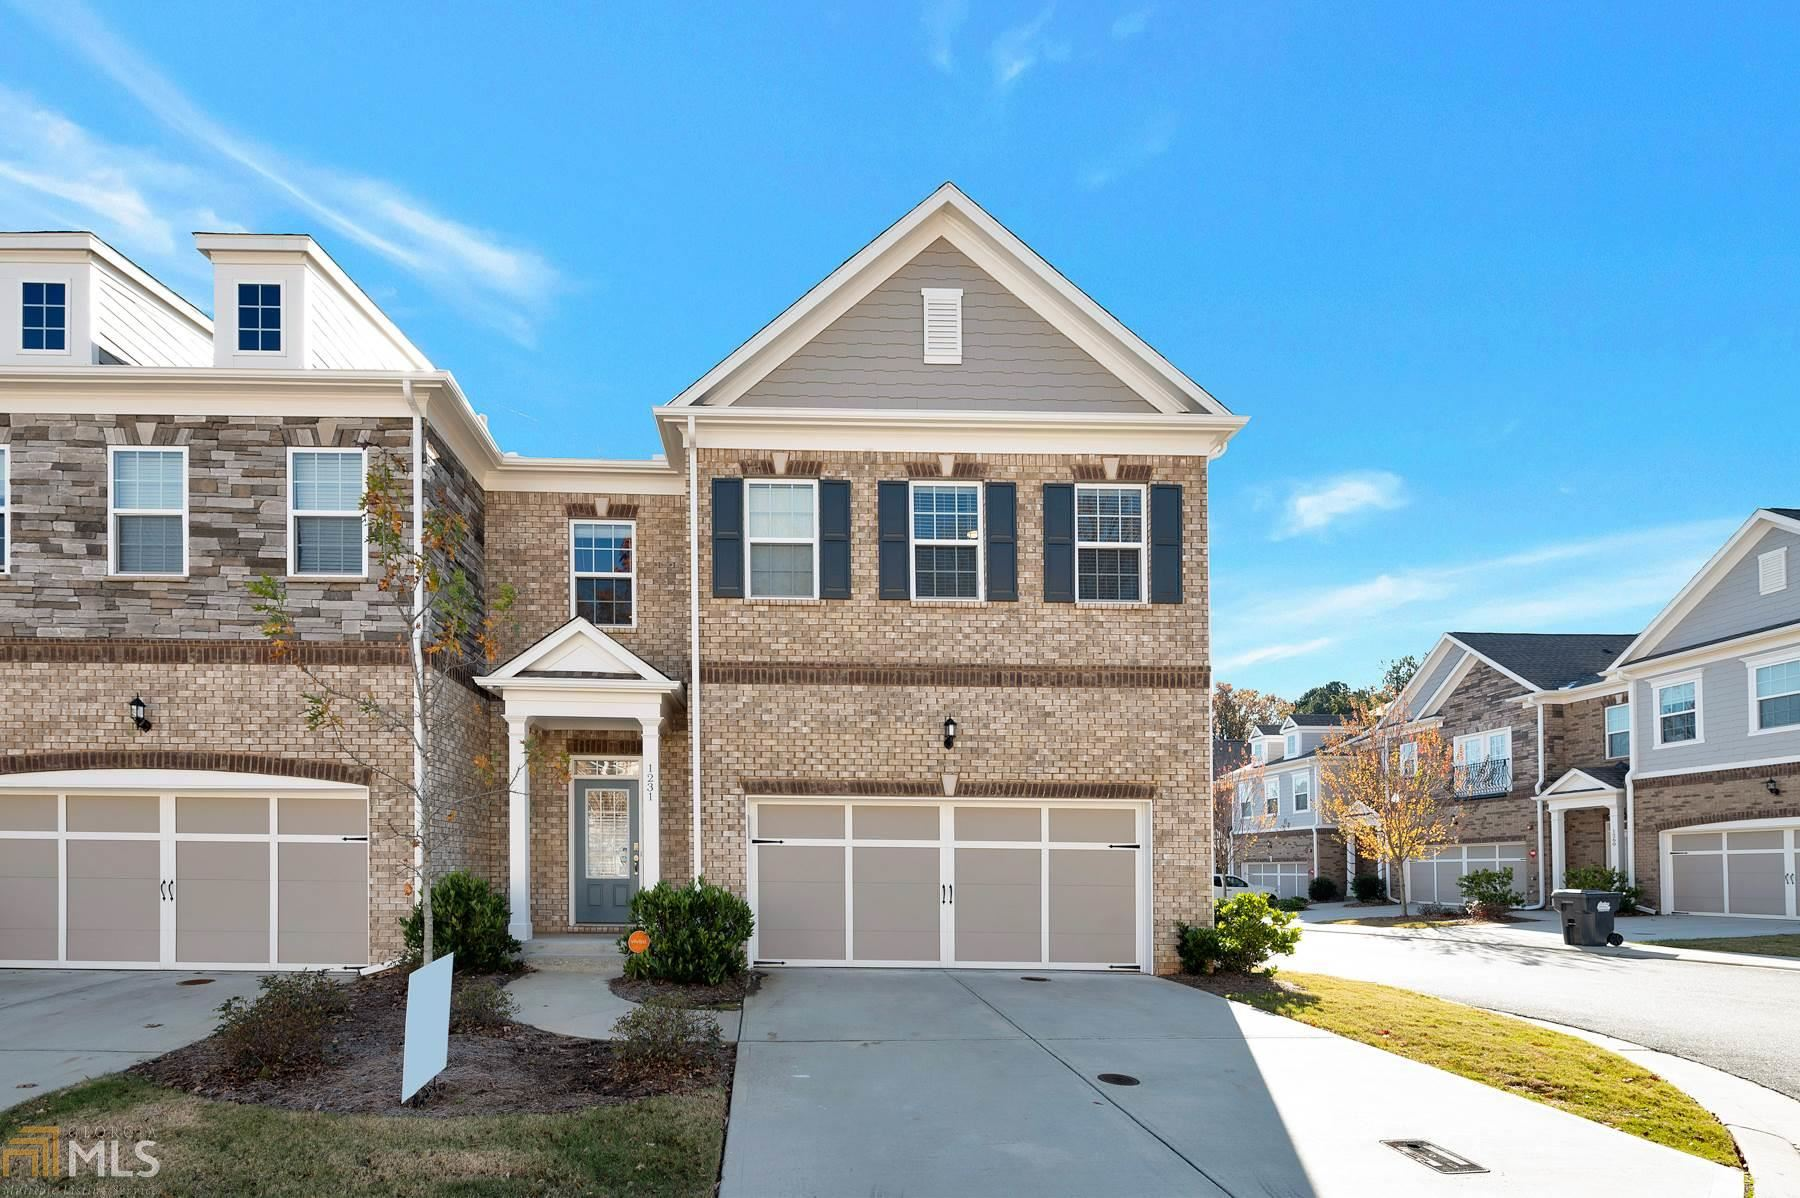 1231 Tigerwood, Marietta, GA 30067 - #: 8889585